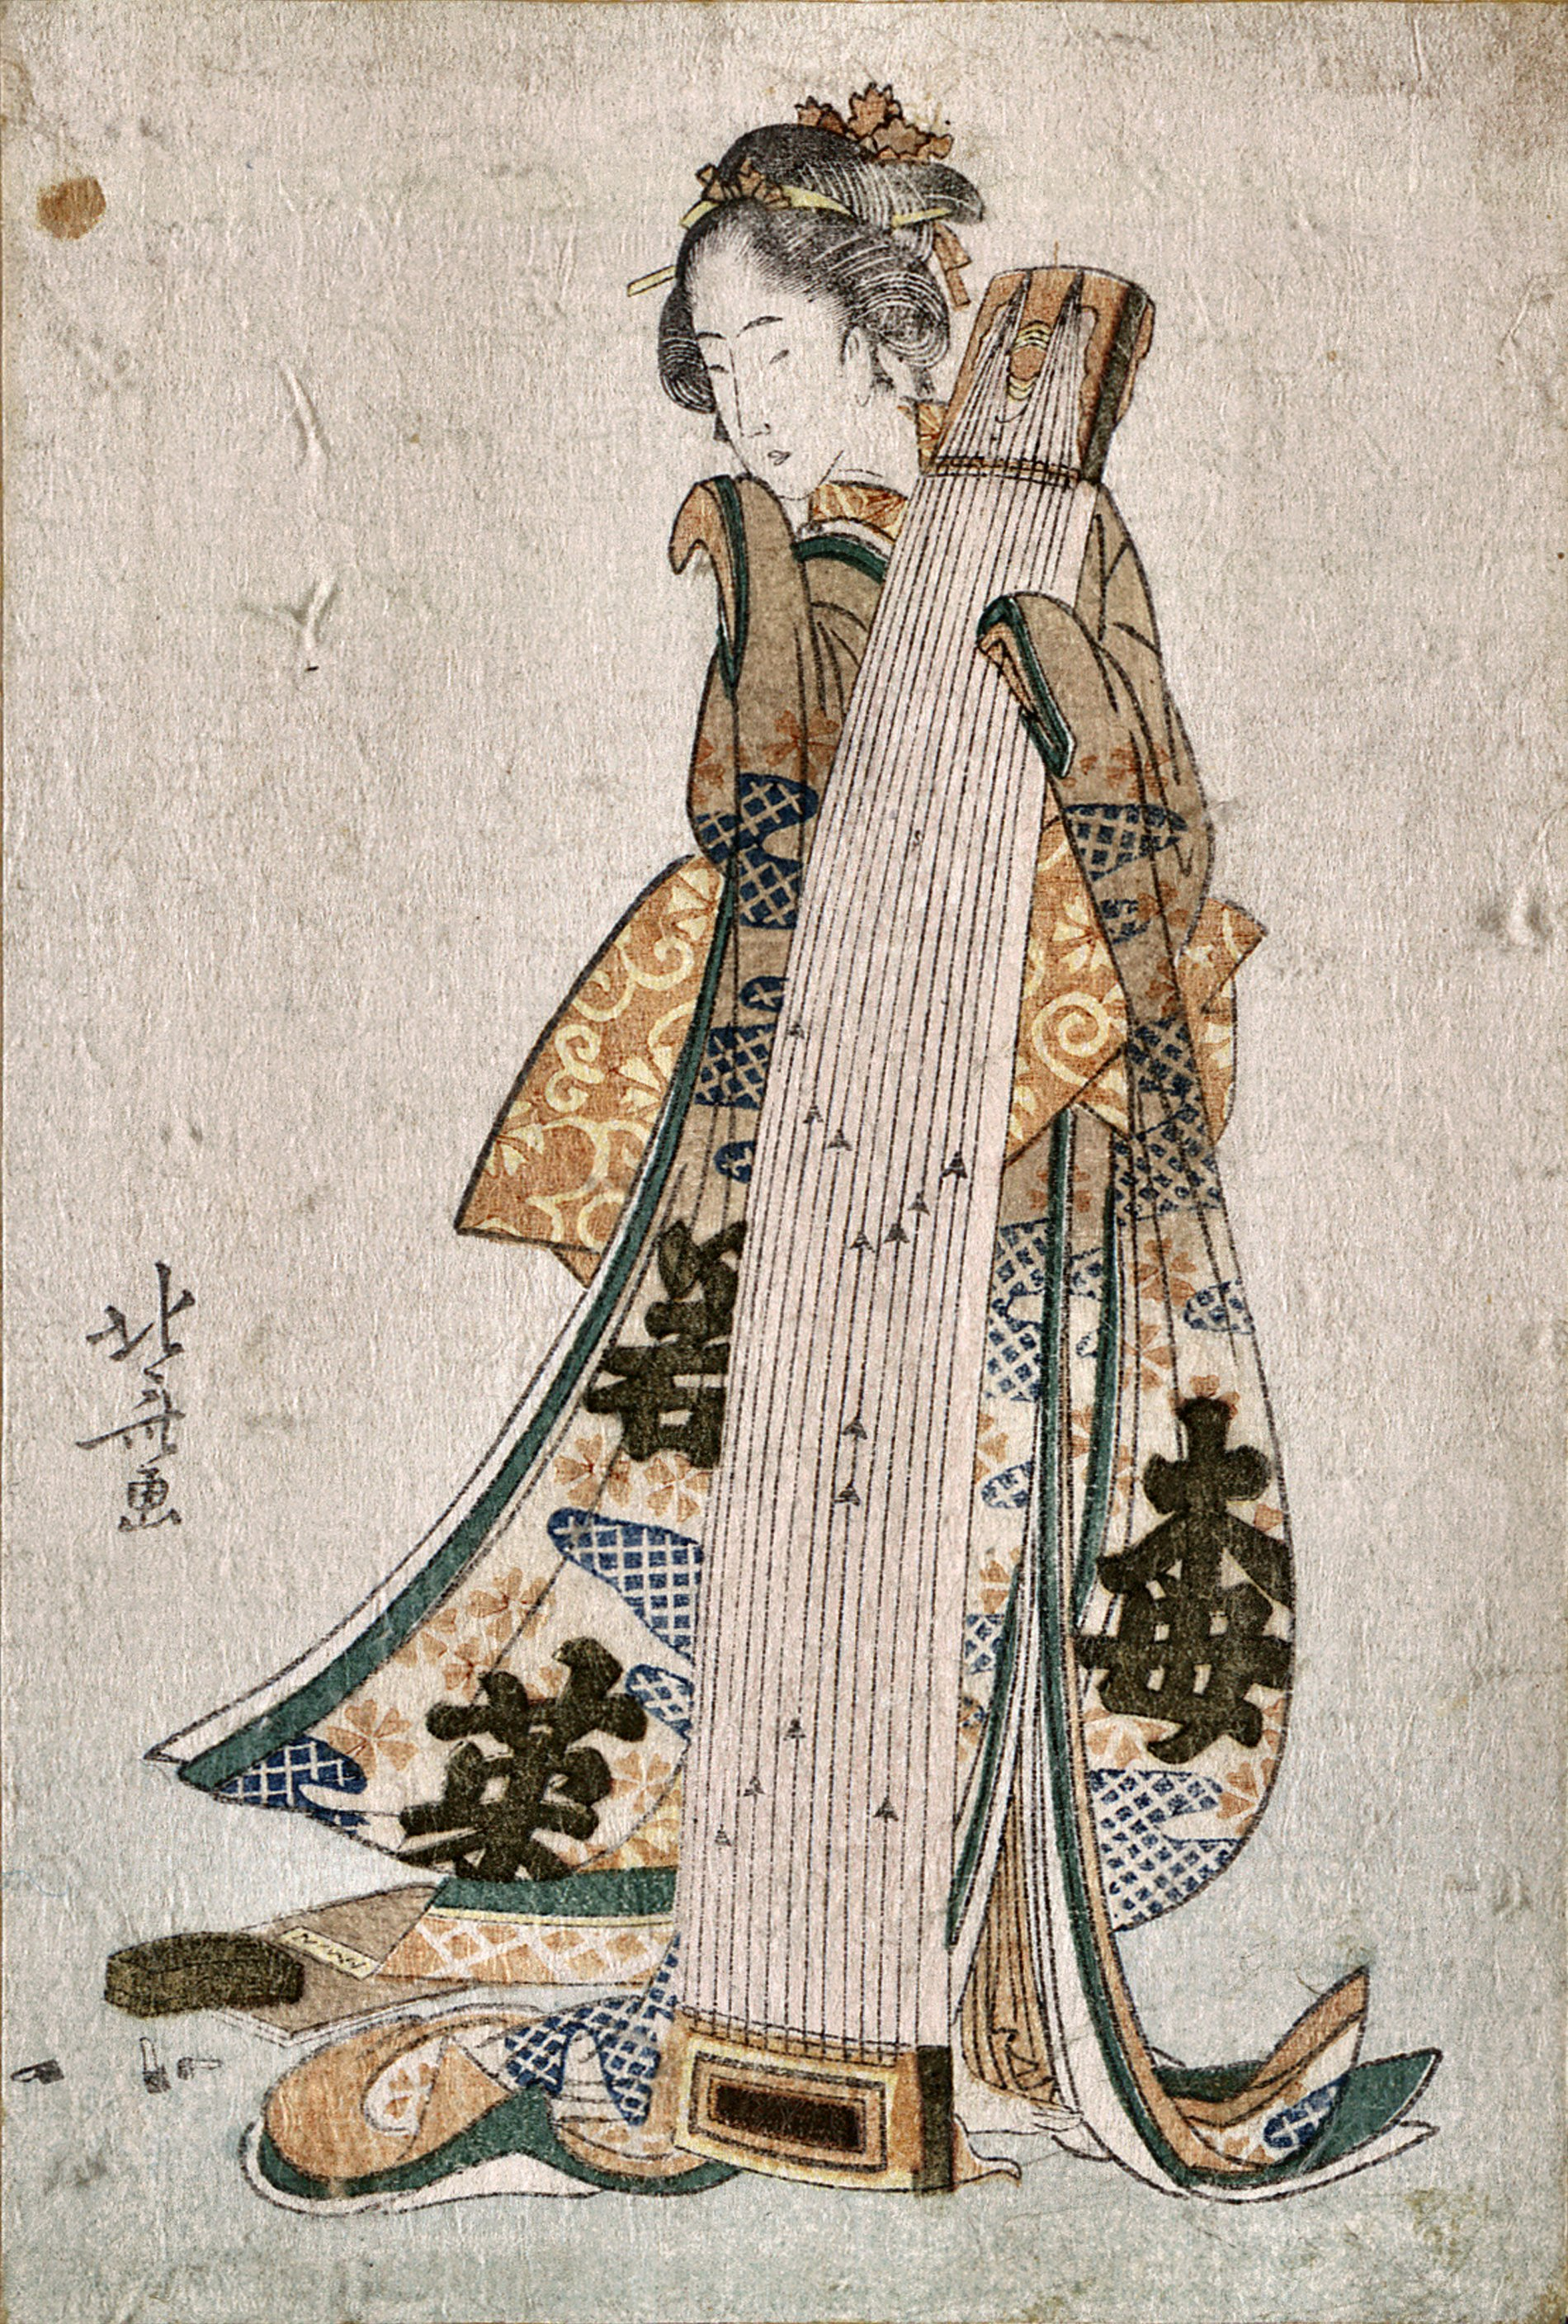 Young maiden holding a zither about 1800 by Katsushika Hokusai (1760 – 1849)